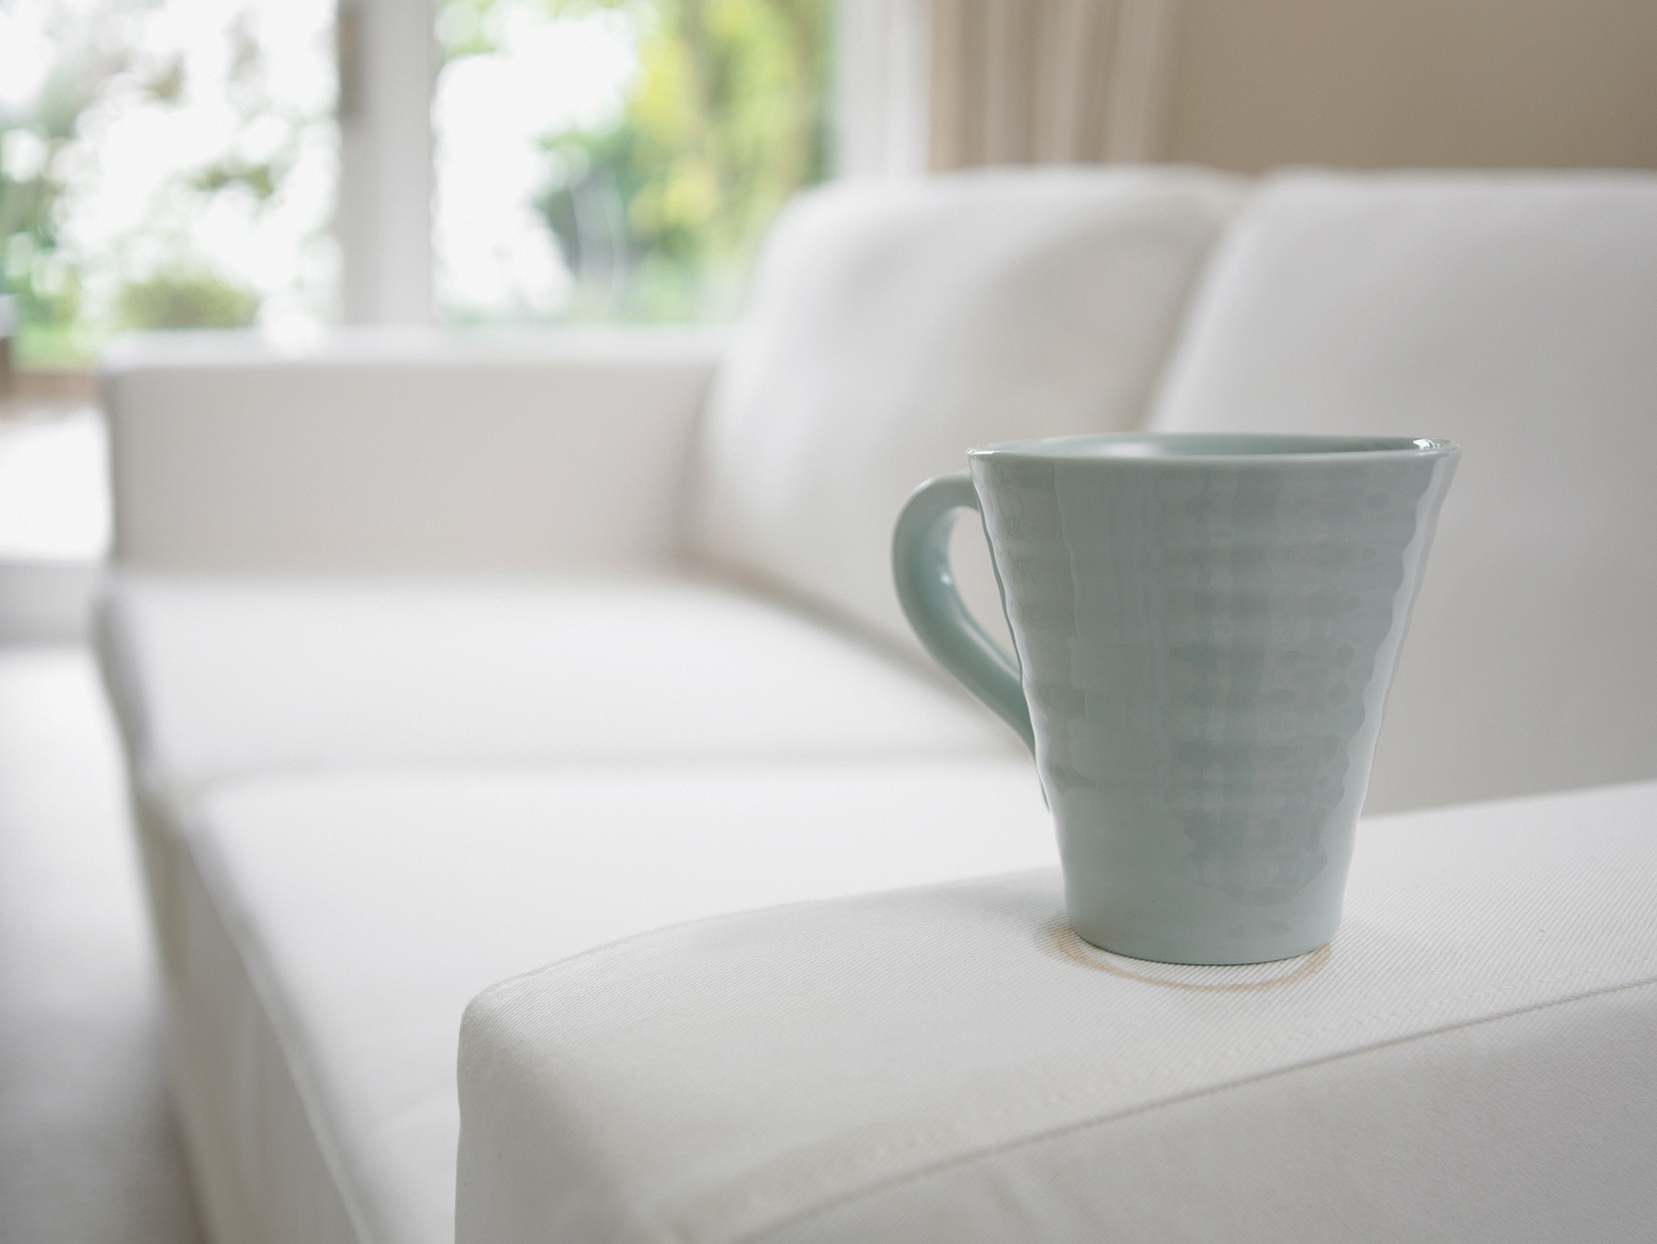 coffee cup staining white couch